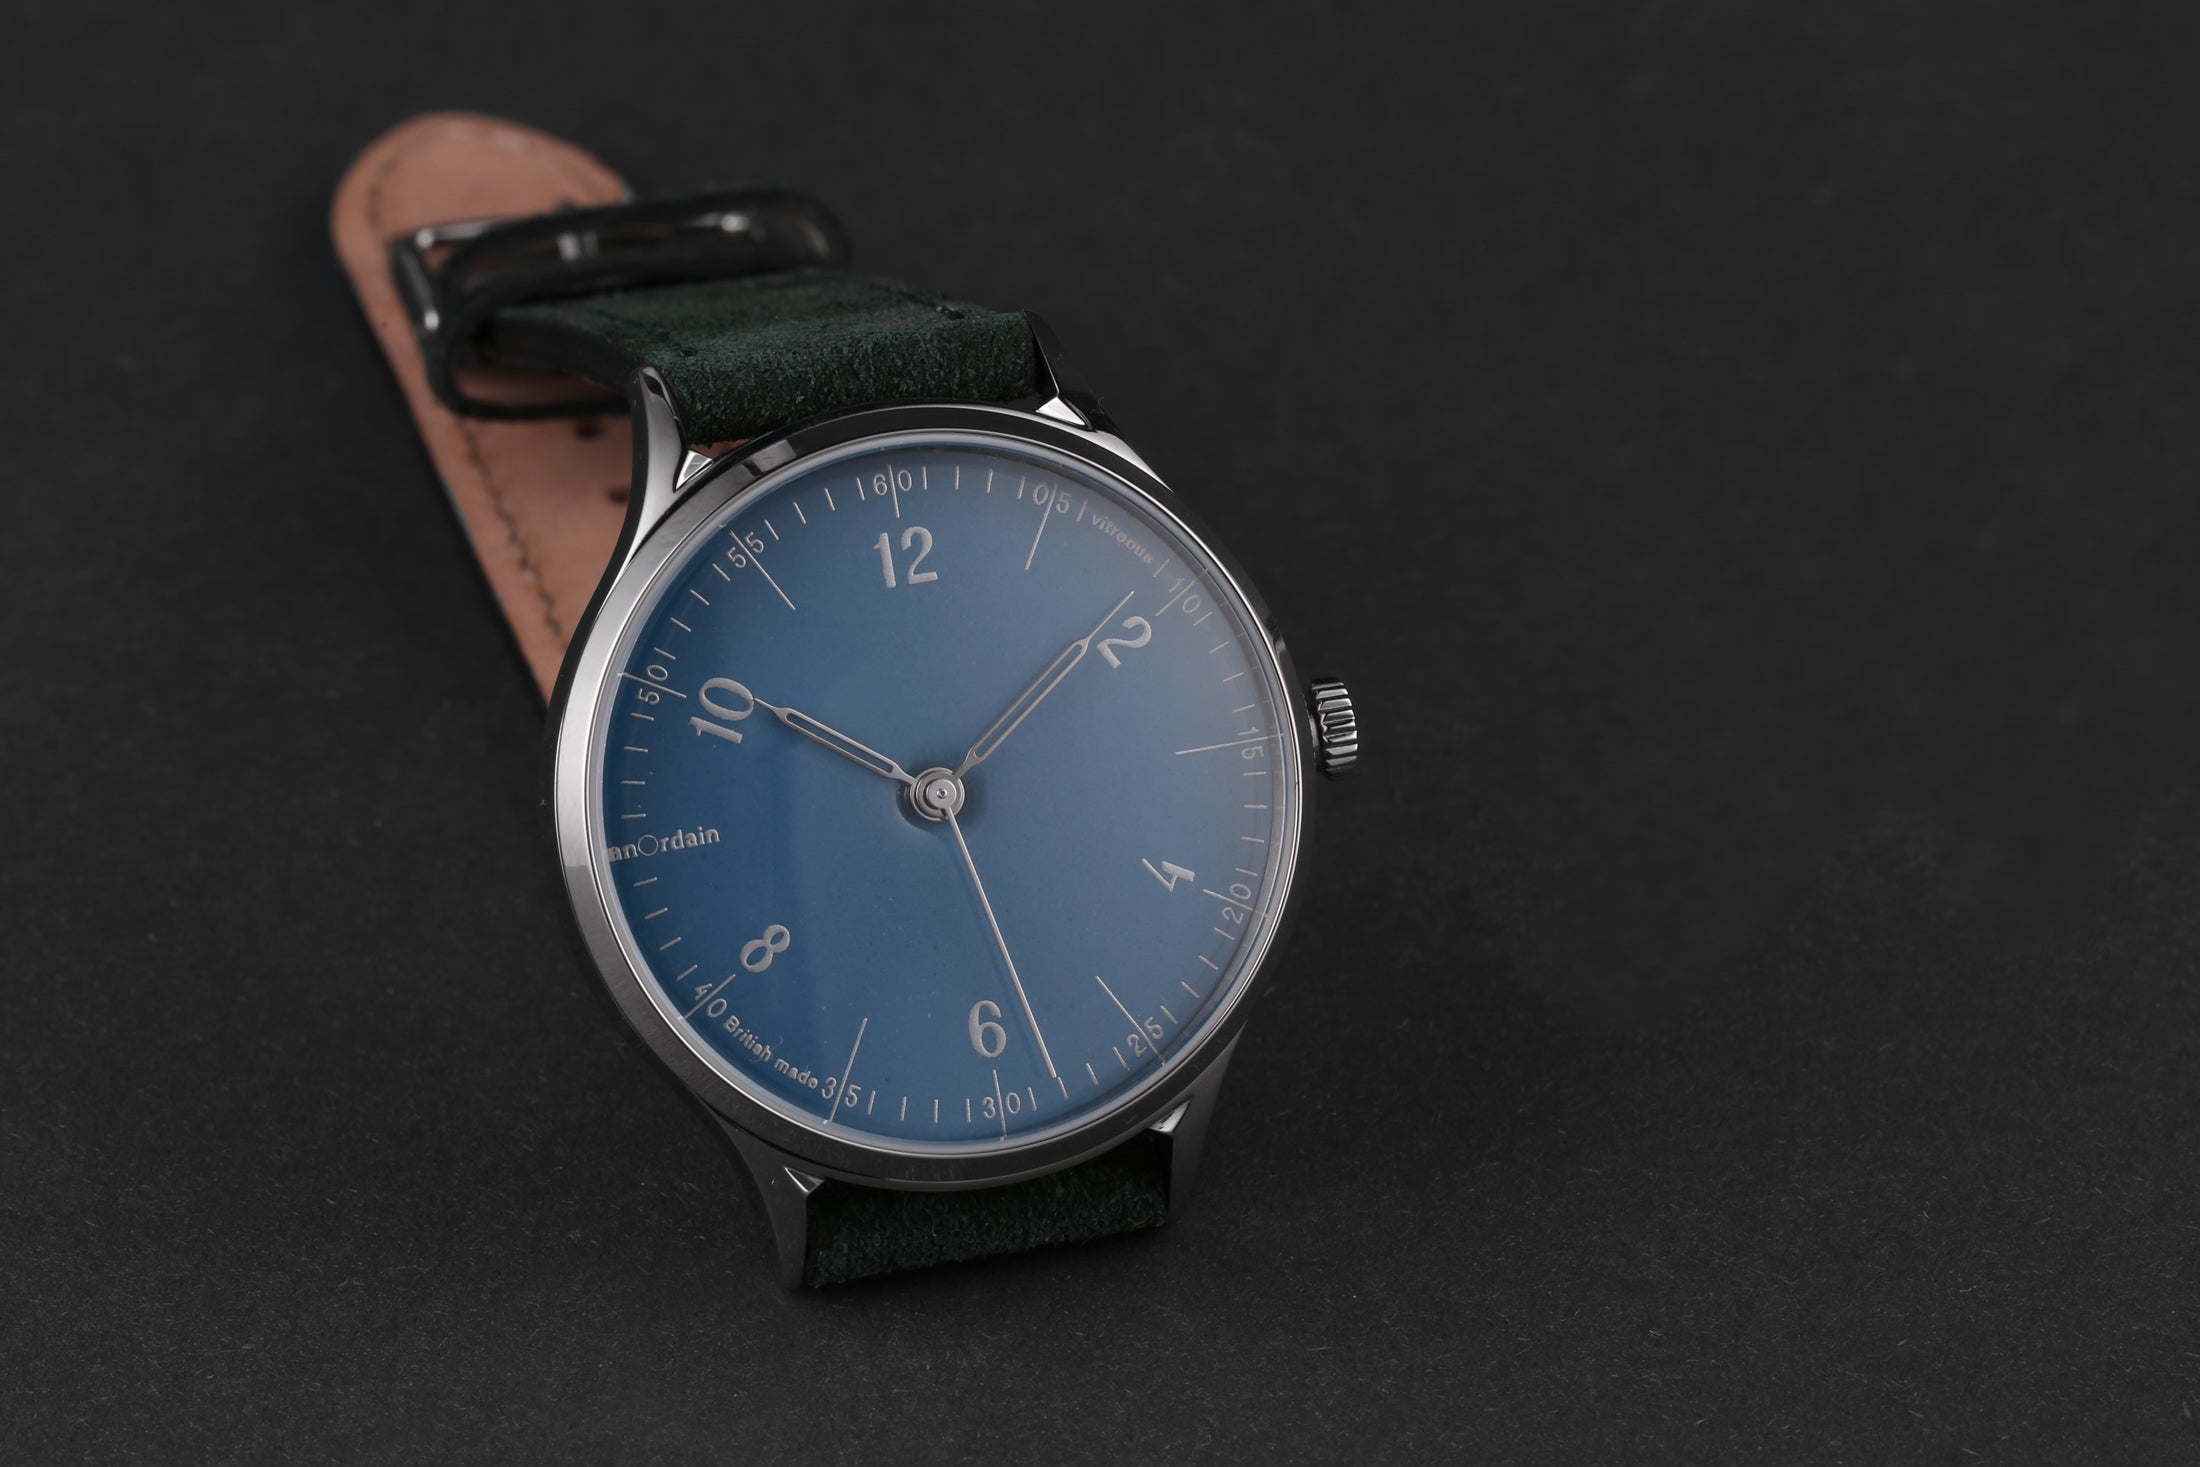 anOrdain Model 1 with green suede strap and hebridean blue dial